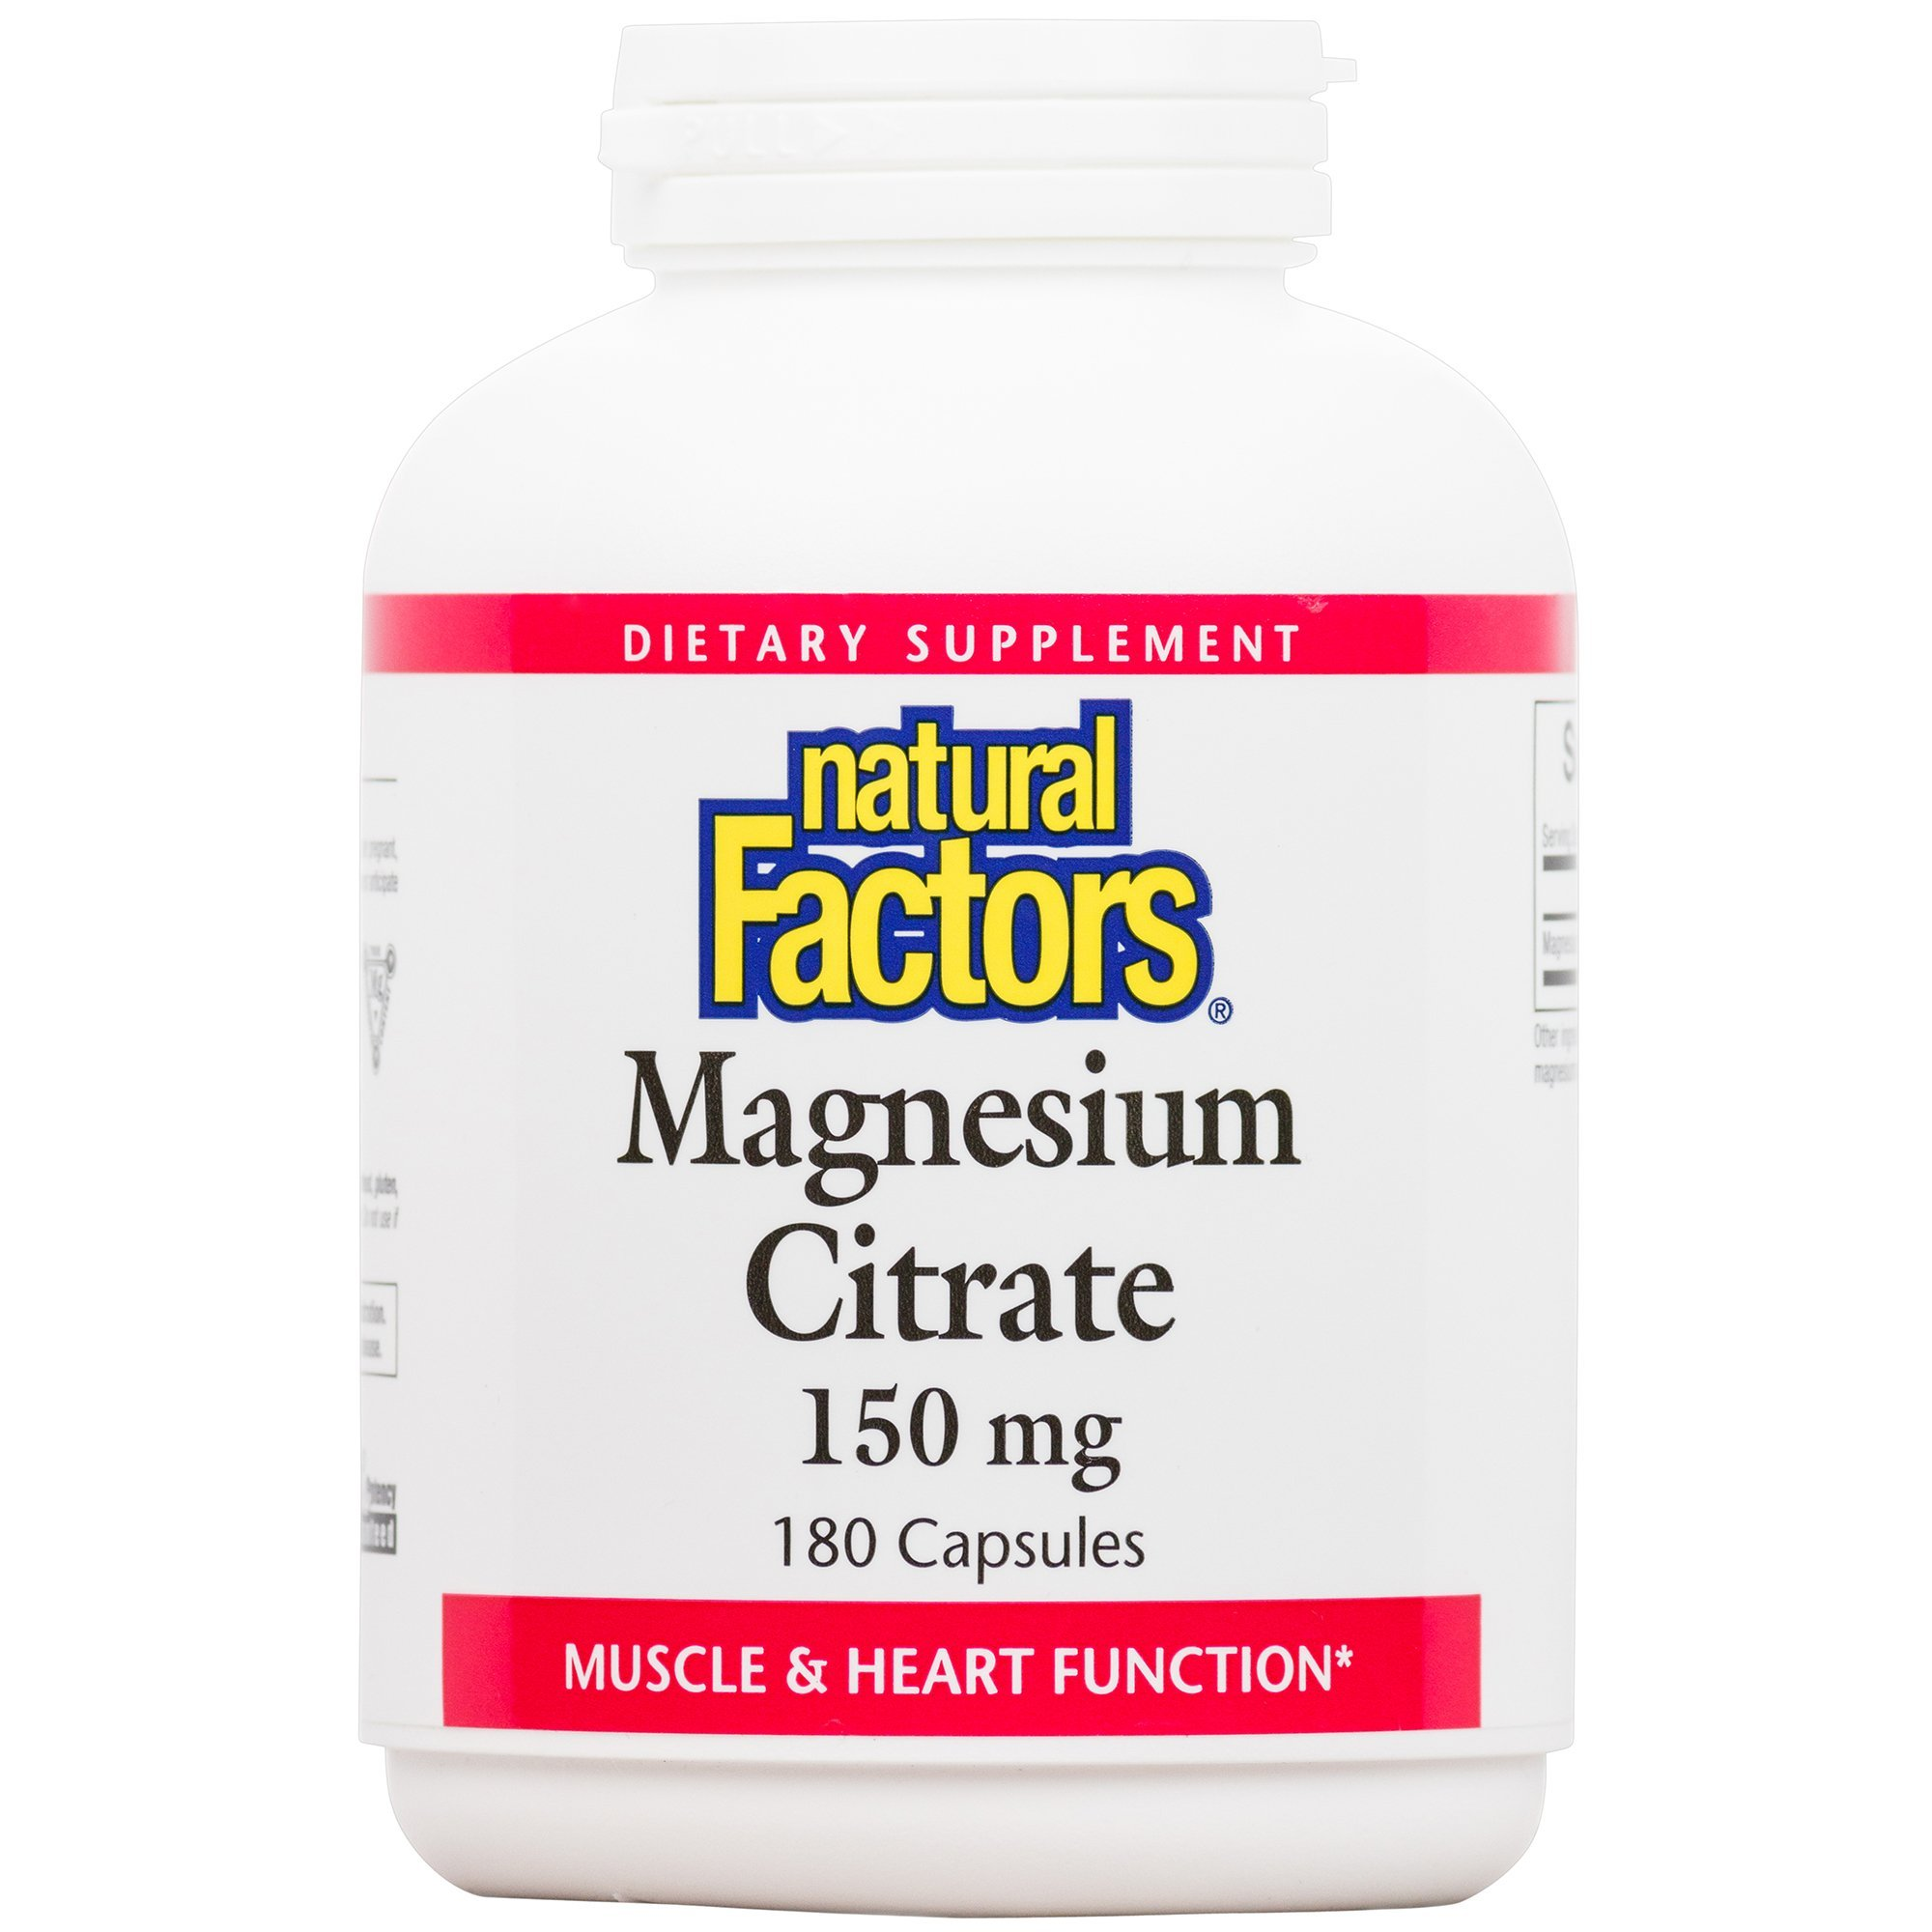 Natural Factors - Magnesium Citrate, Supports Muscle & Heart Function, 180 Capsules